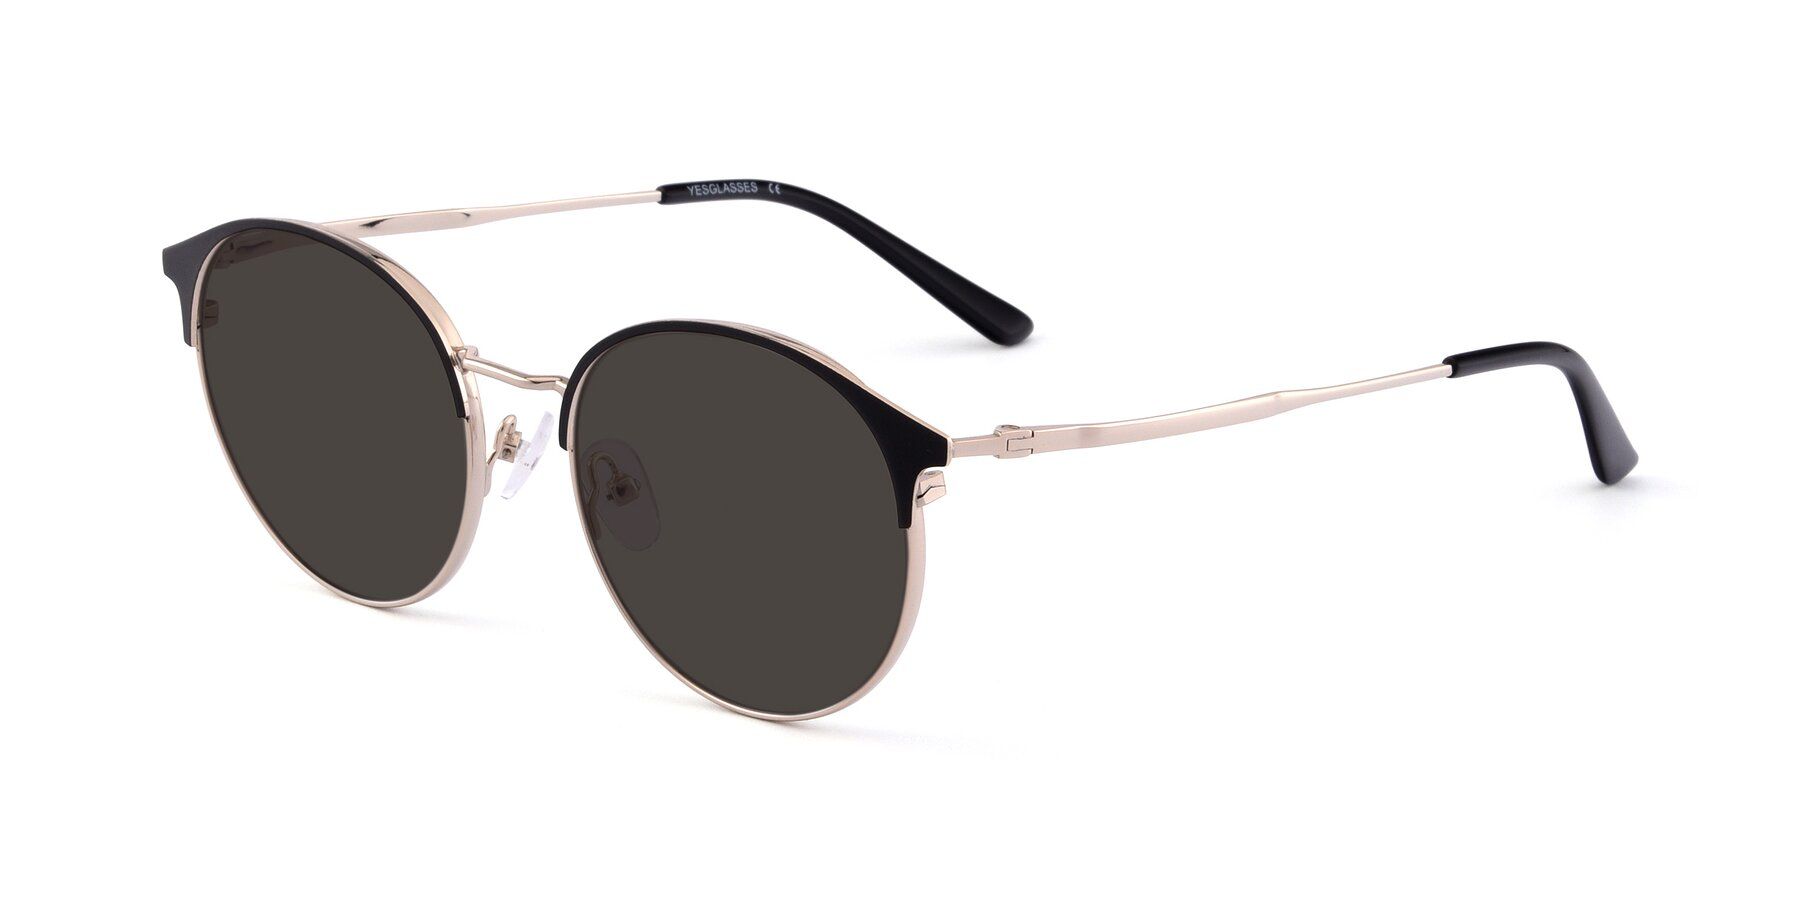 Angle of Berkley in Black-Gold with Gray Tinted Lenses